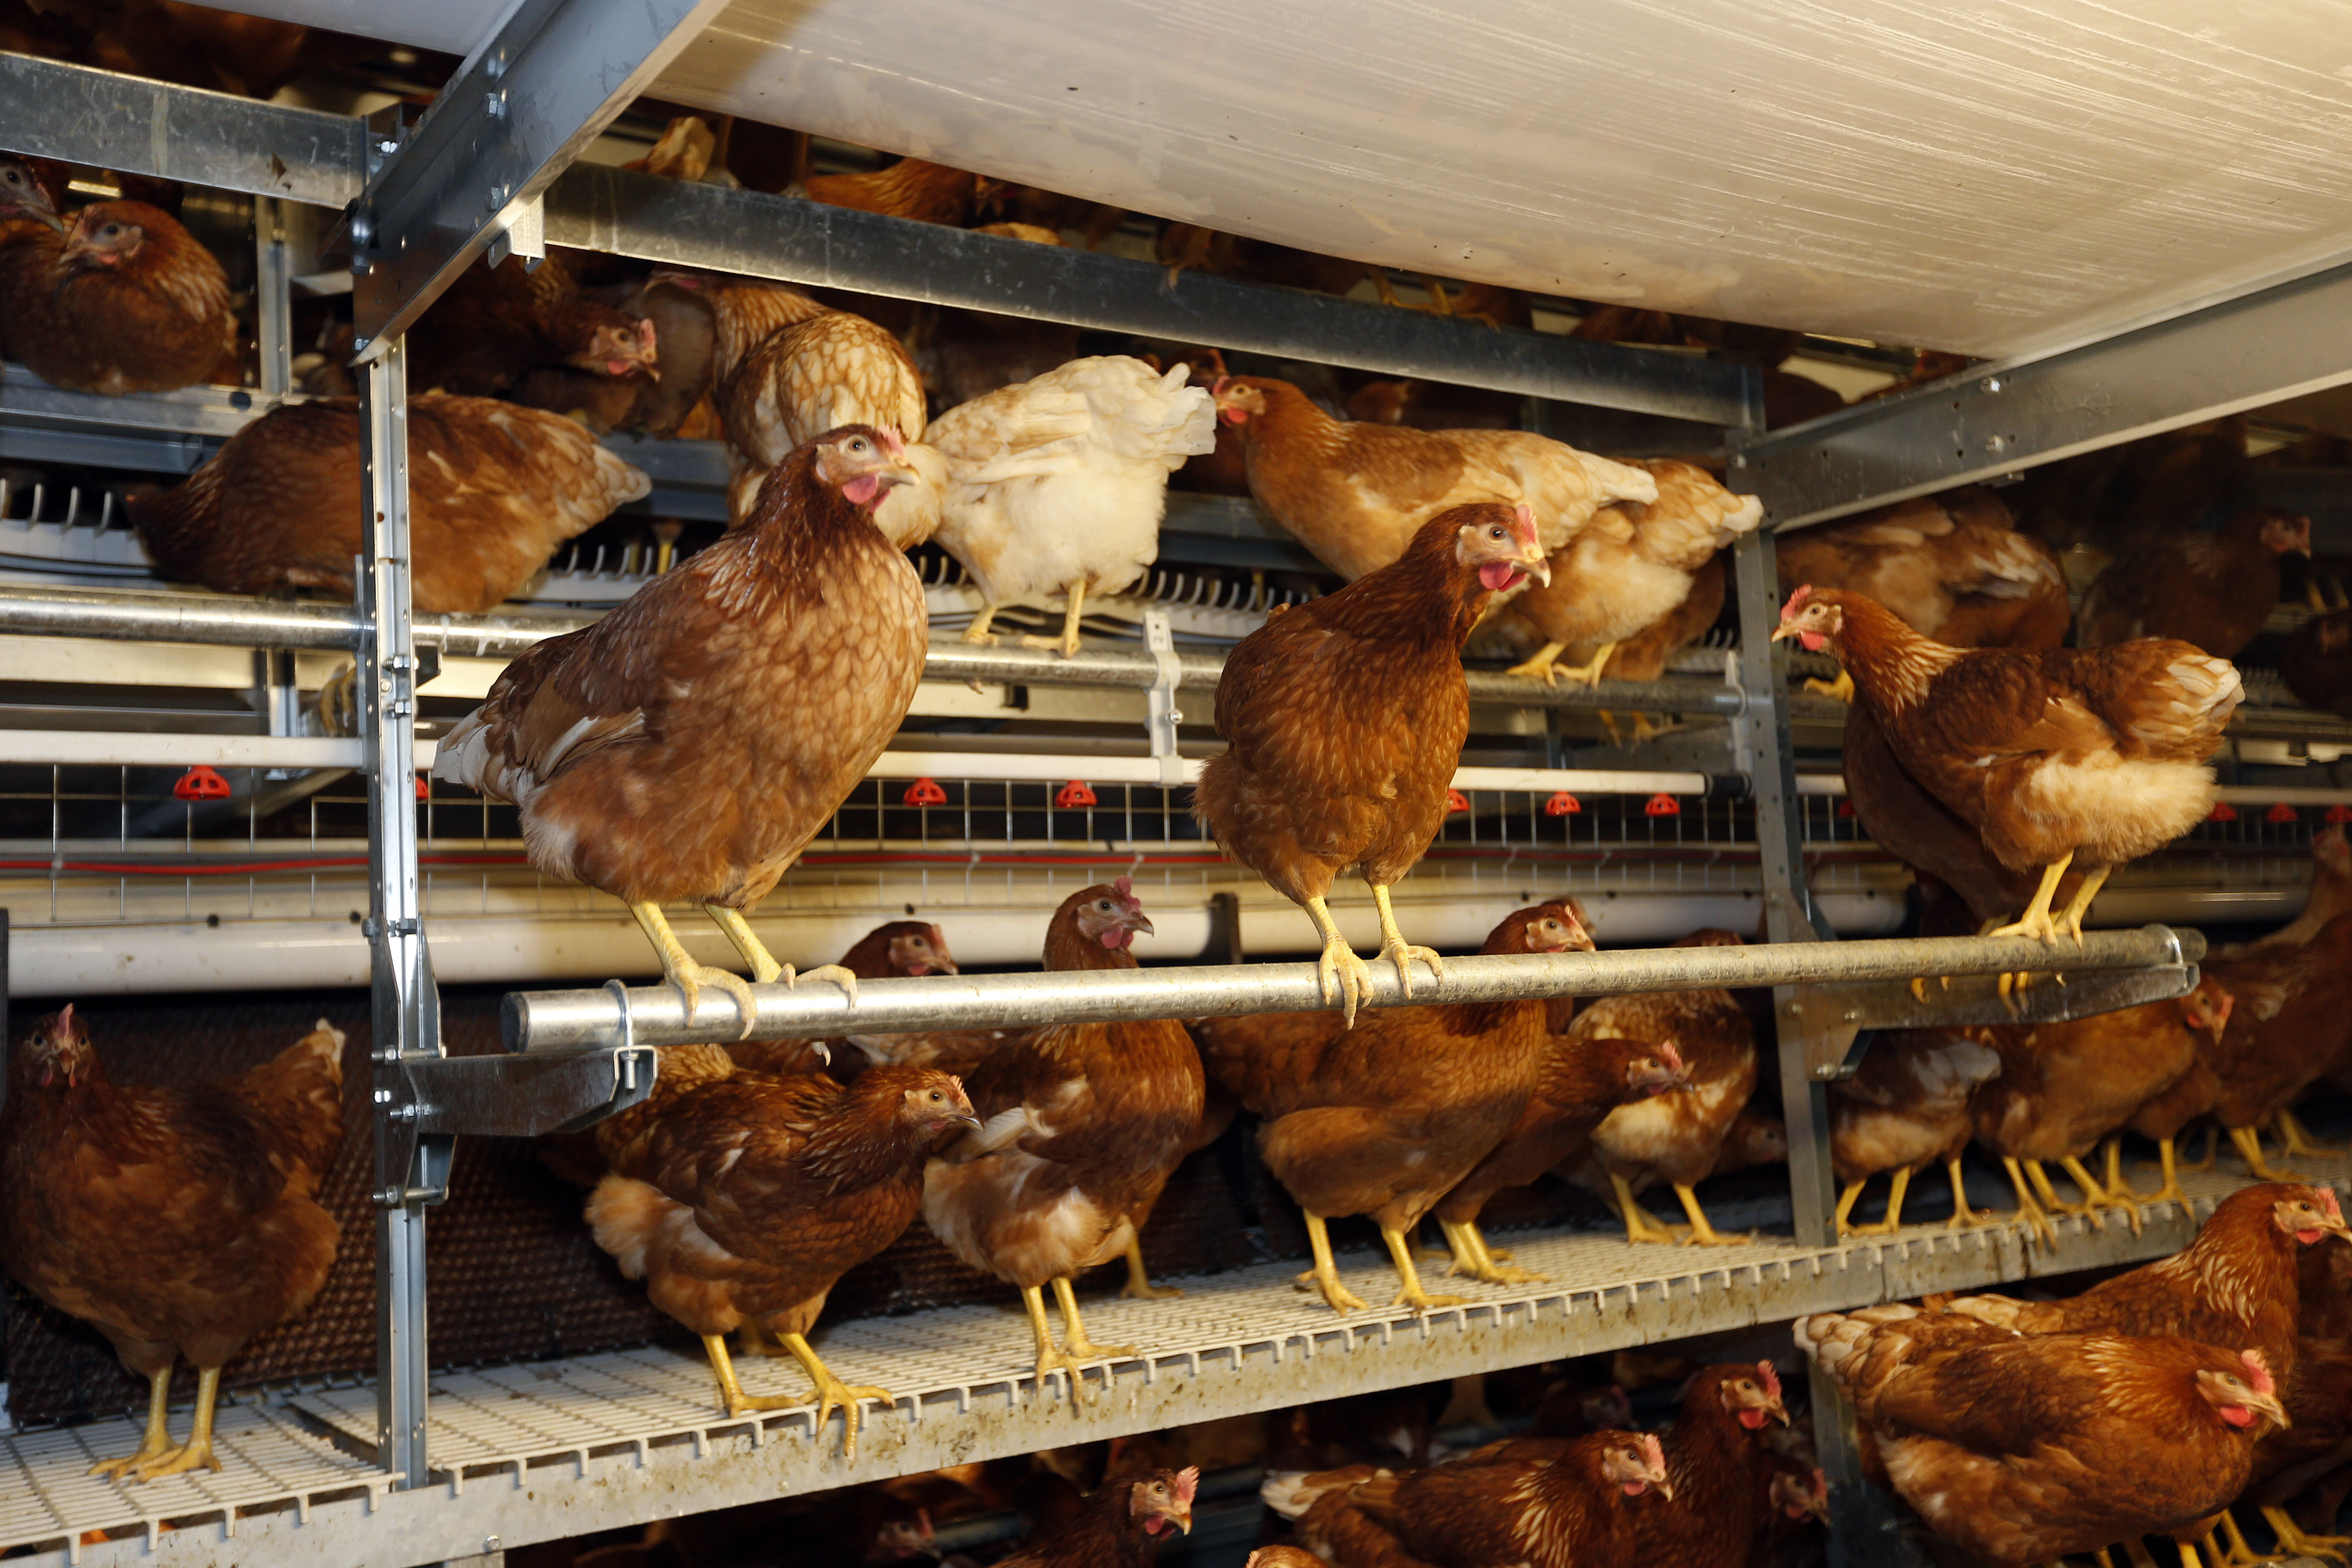 The new requirements for perches, which caused deep concern on welfare grounds from free-range producers, shows where perches can be positioned within the shed. Photo: Bert Jansen